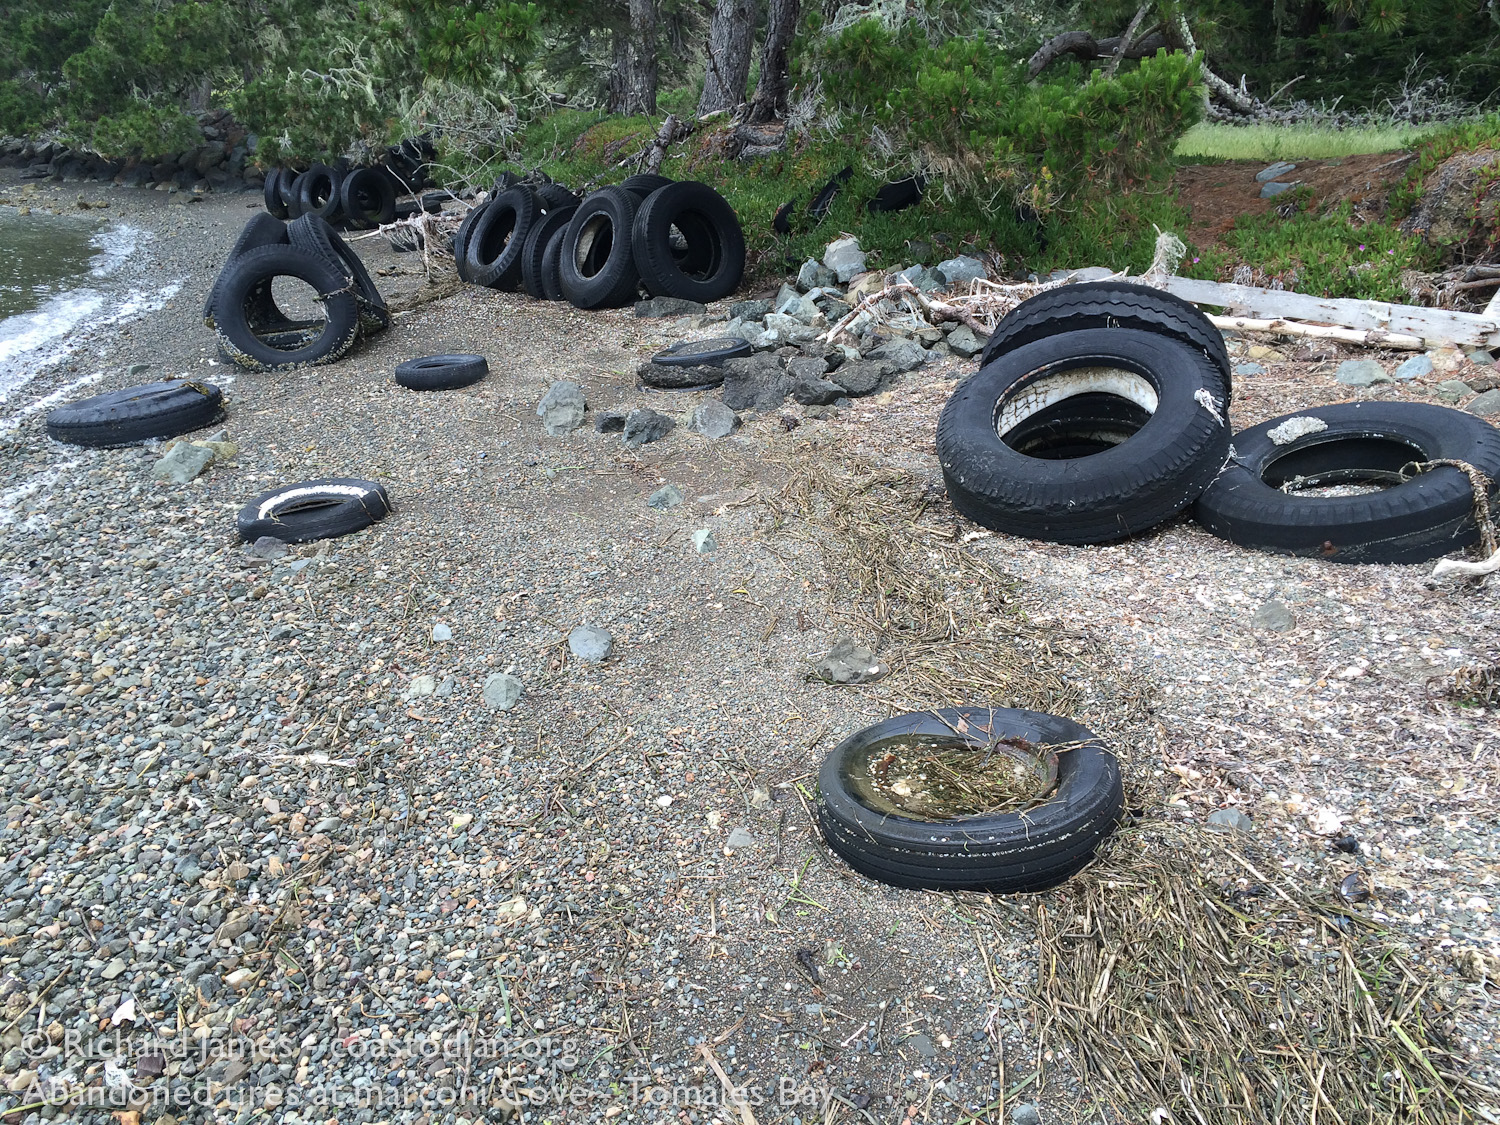 A few of the hundreds of abandoned tires at Marconi Cove - Tomales Bay ©Richard James - coastodian.org